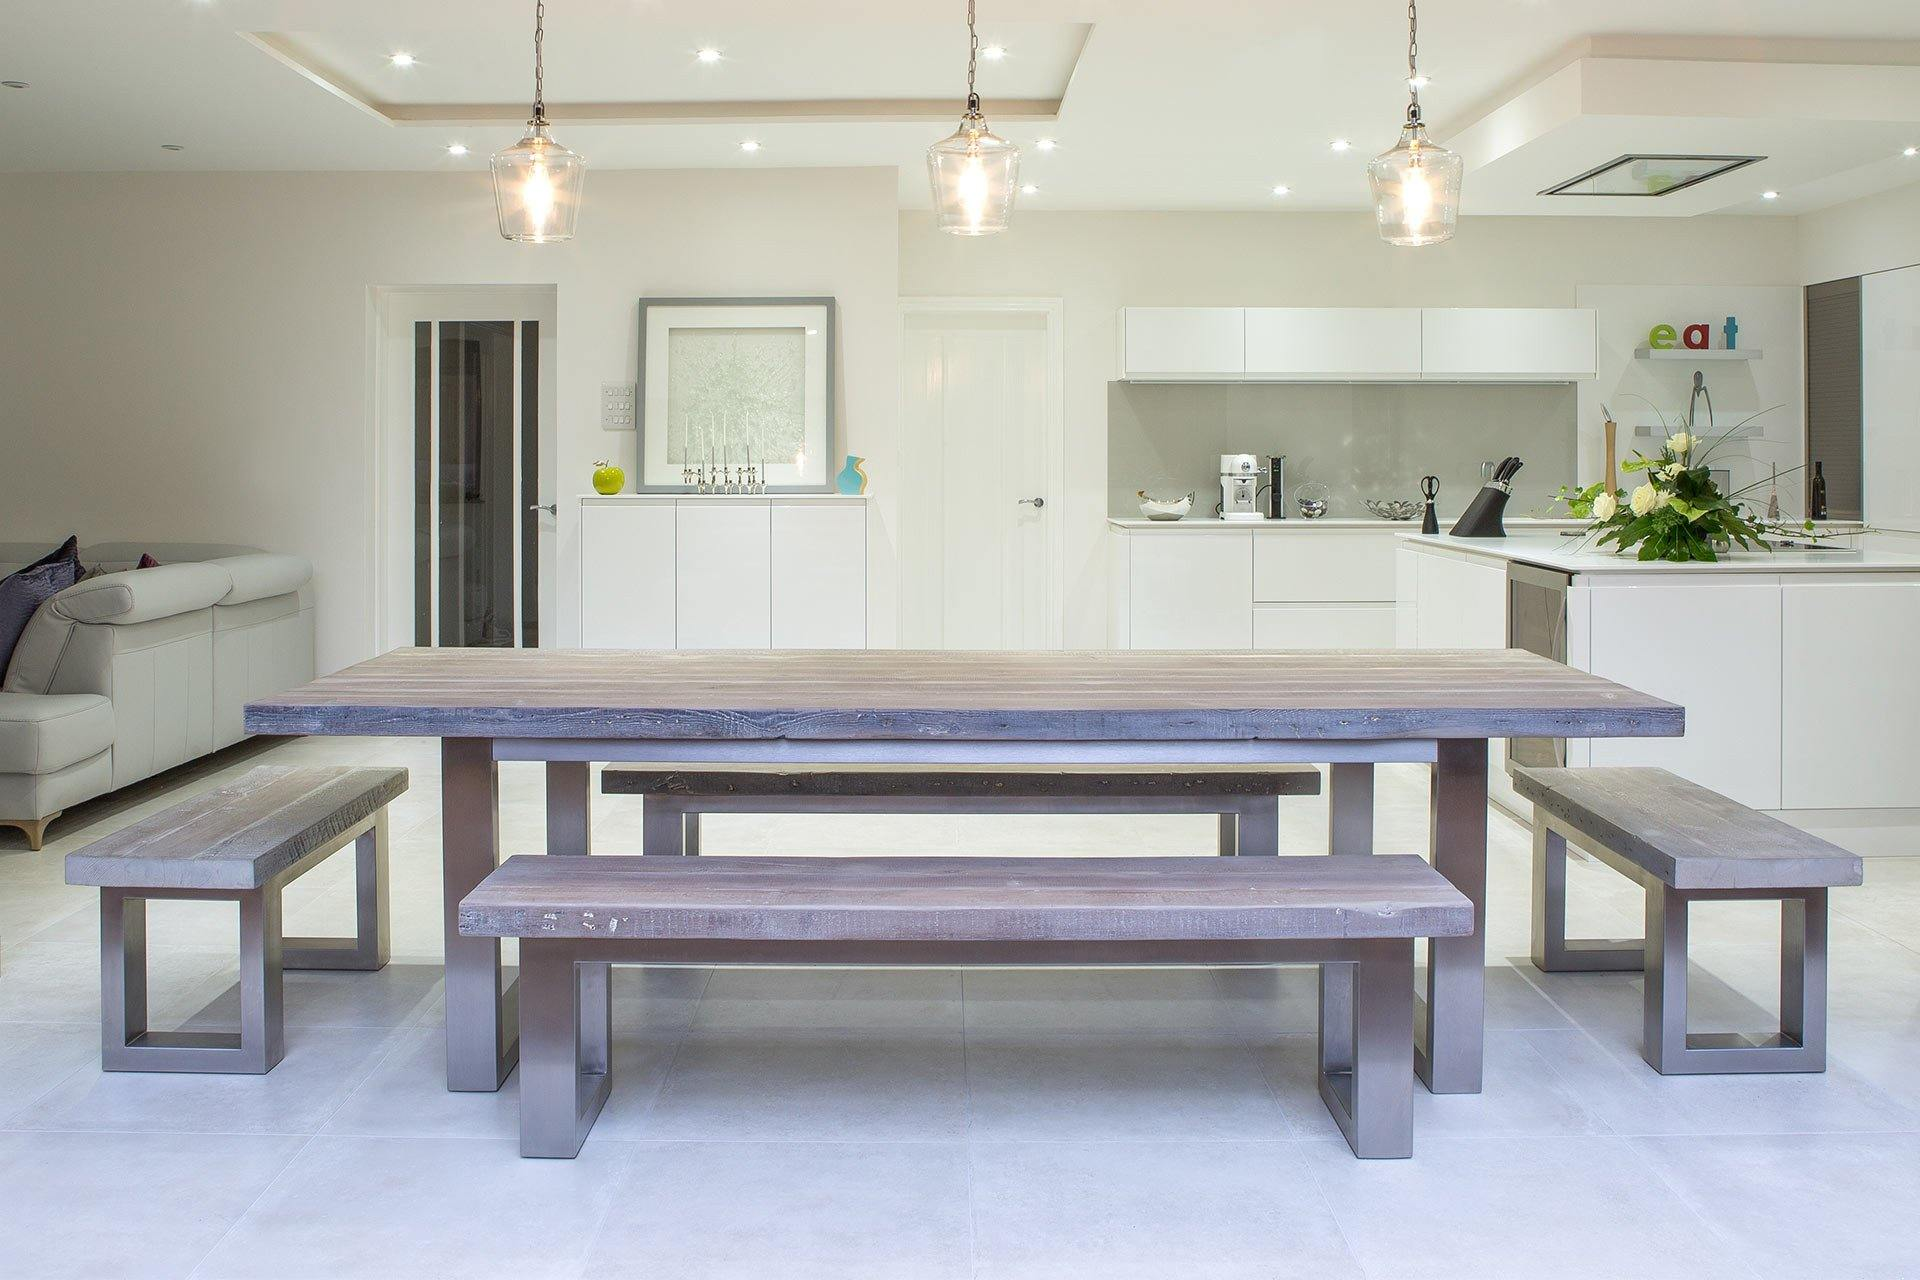 Grey 100cm End Benches & 178cm Benches With 284cm Long Overhang Table (Sold Separately)